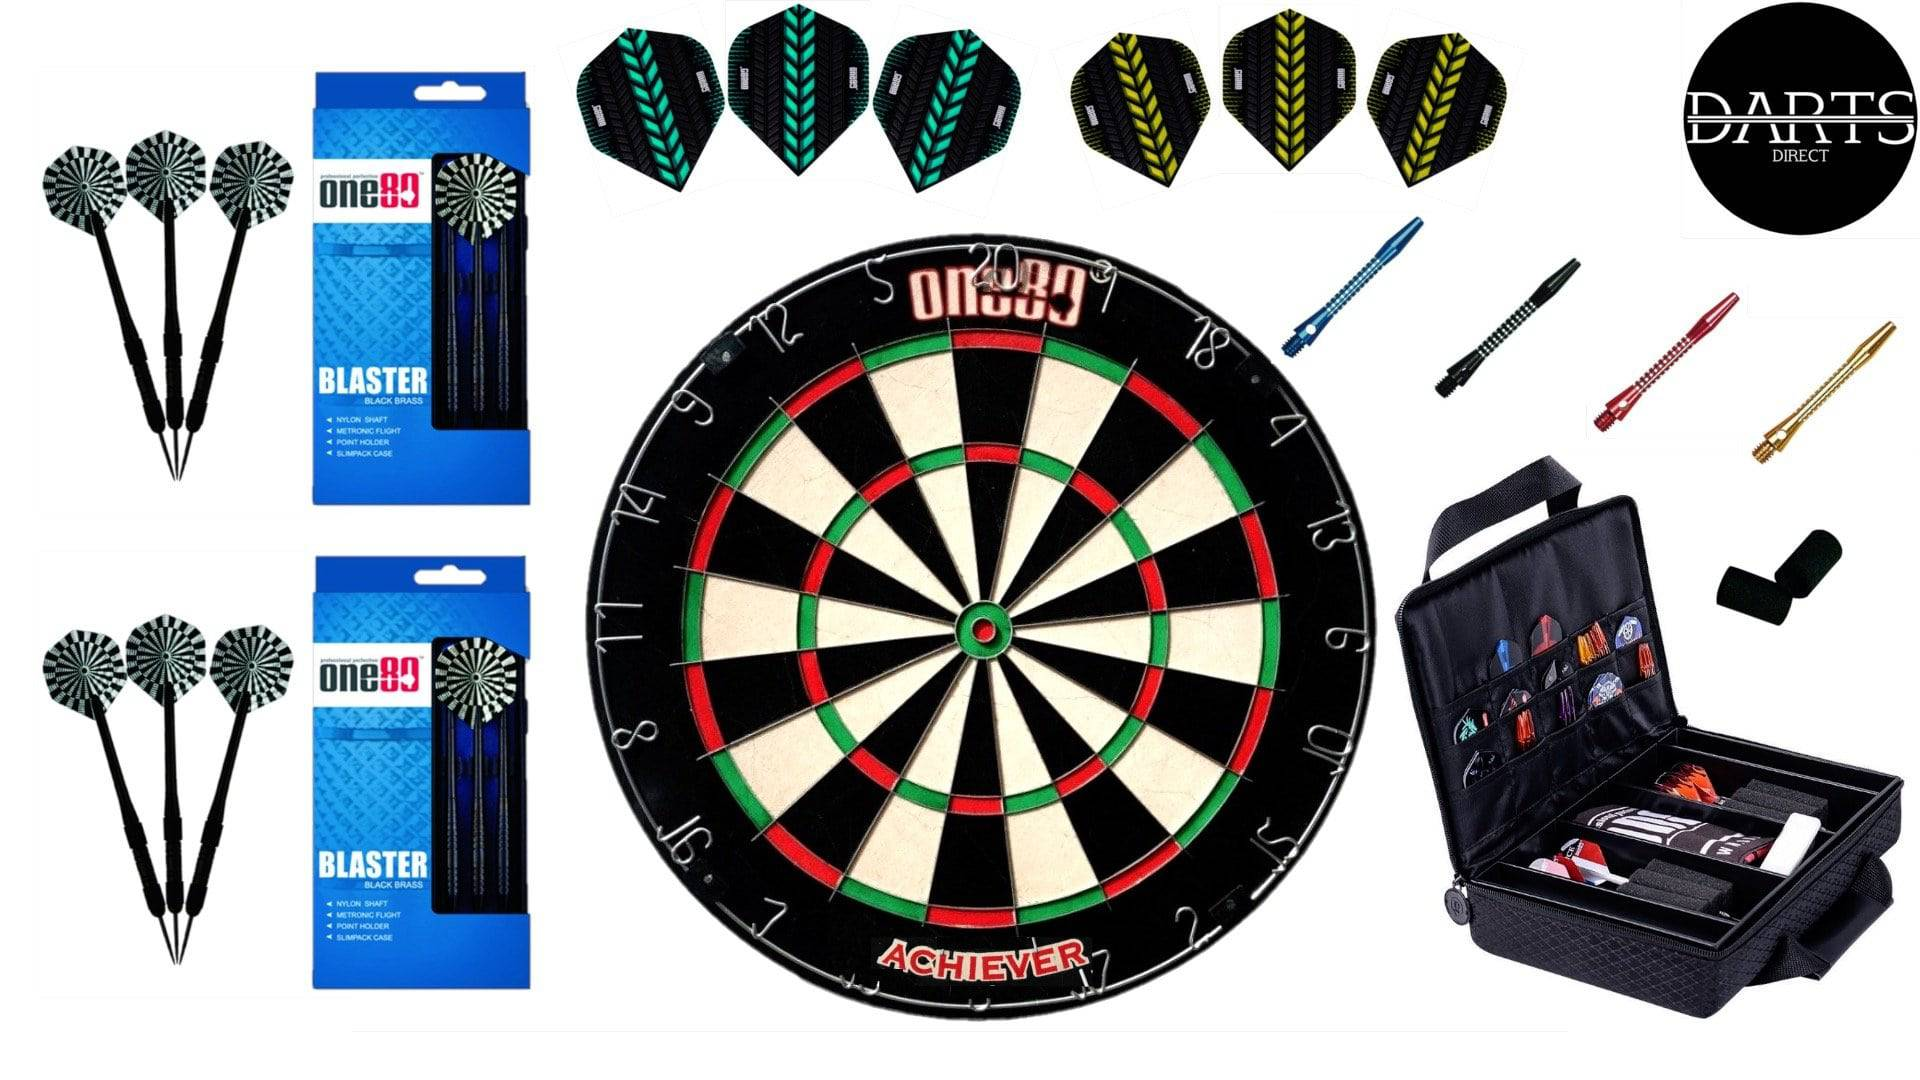 One80 Dartboard Custom Pack - Darts Direct